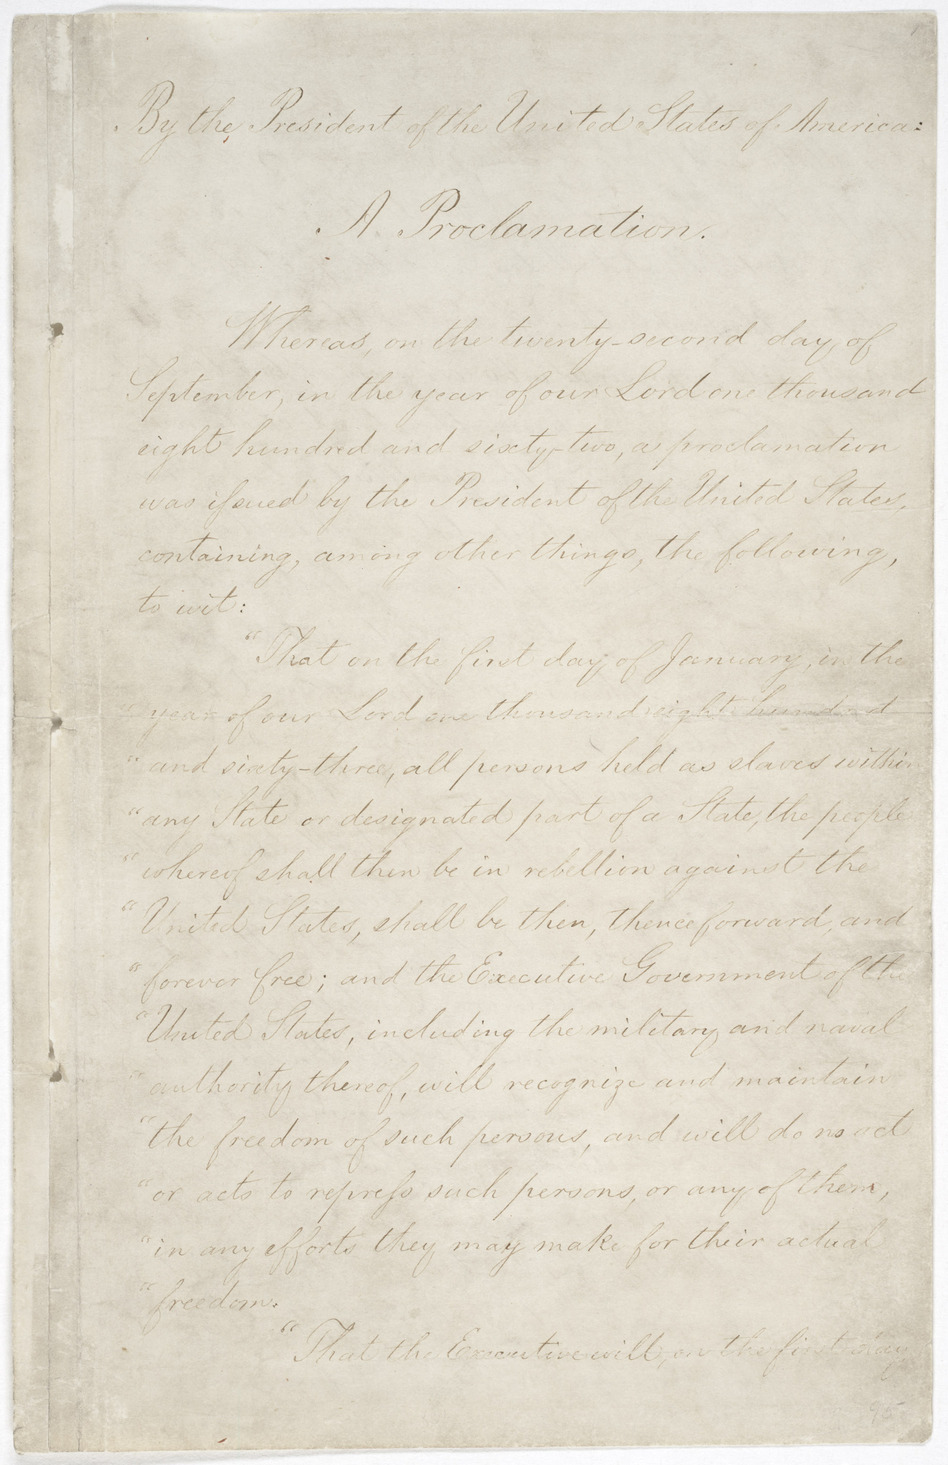 The first page of the Emancipation Proclamation on display at the National Archives in Washington, D.C. (National Archives and Records)